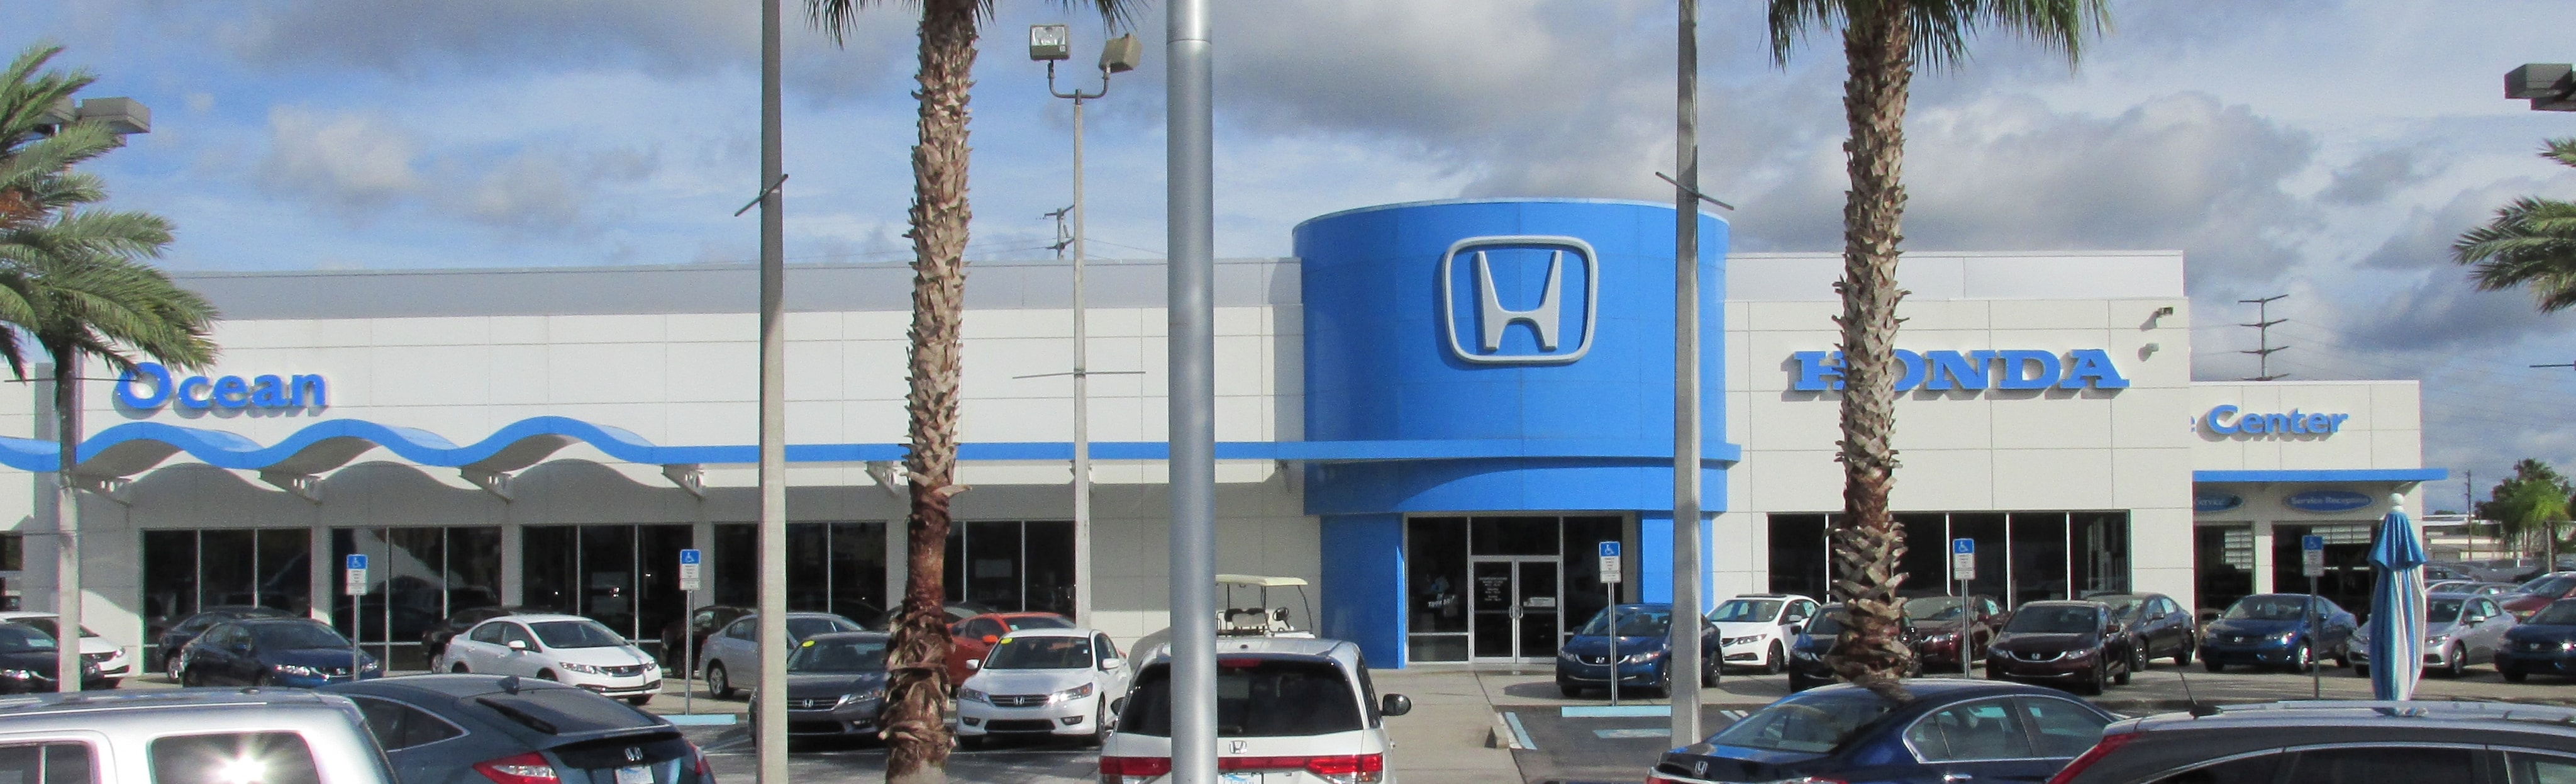 Honda Upgrade Program Offers And Features At Ocean Honda In Port Richey  Serving The Tampa Bay Area